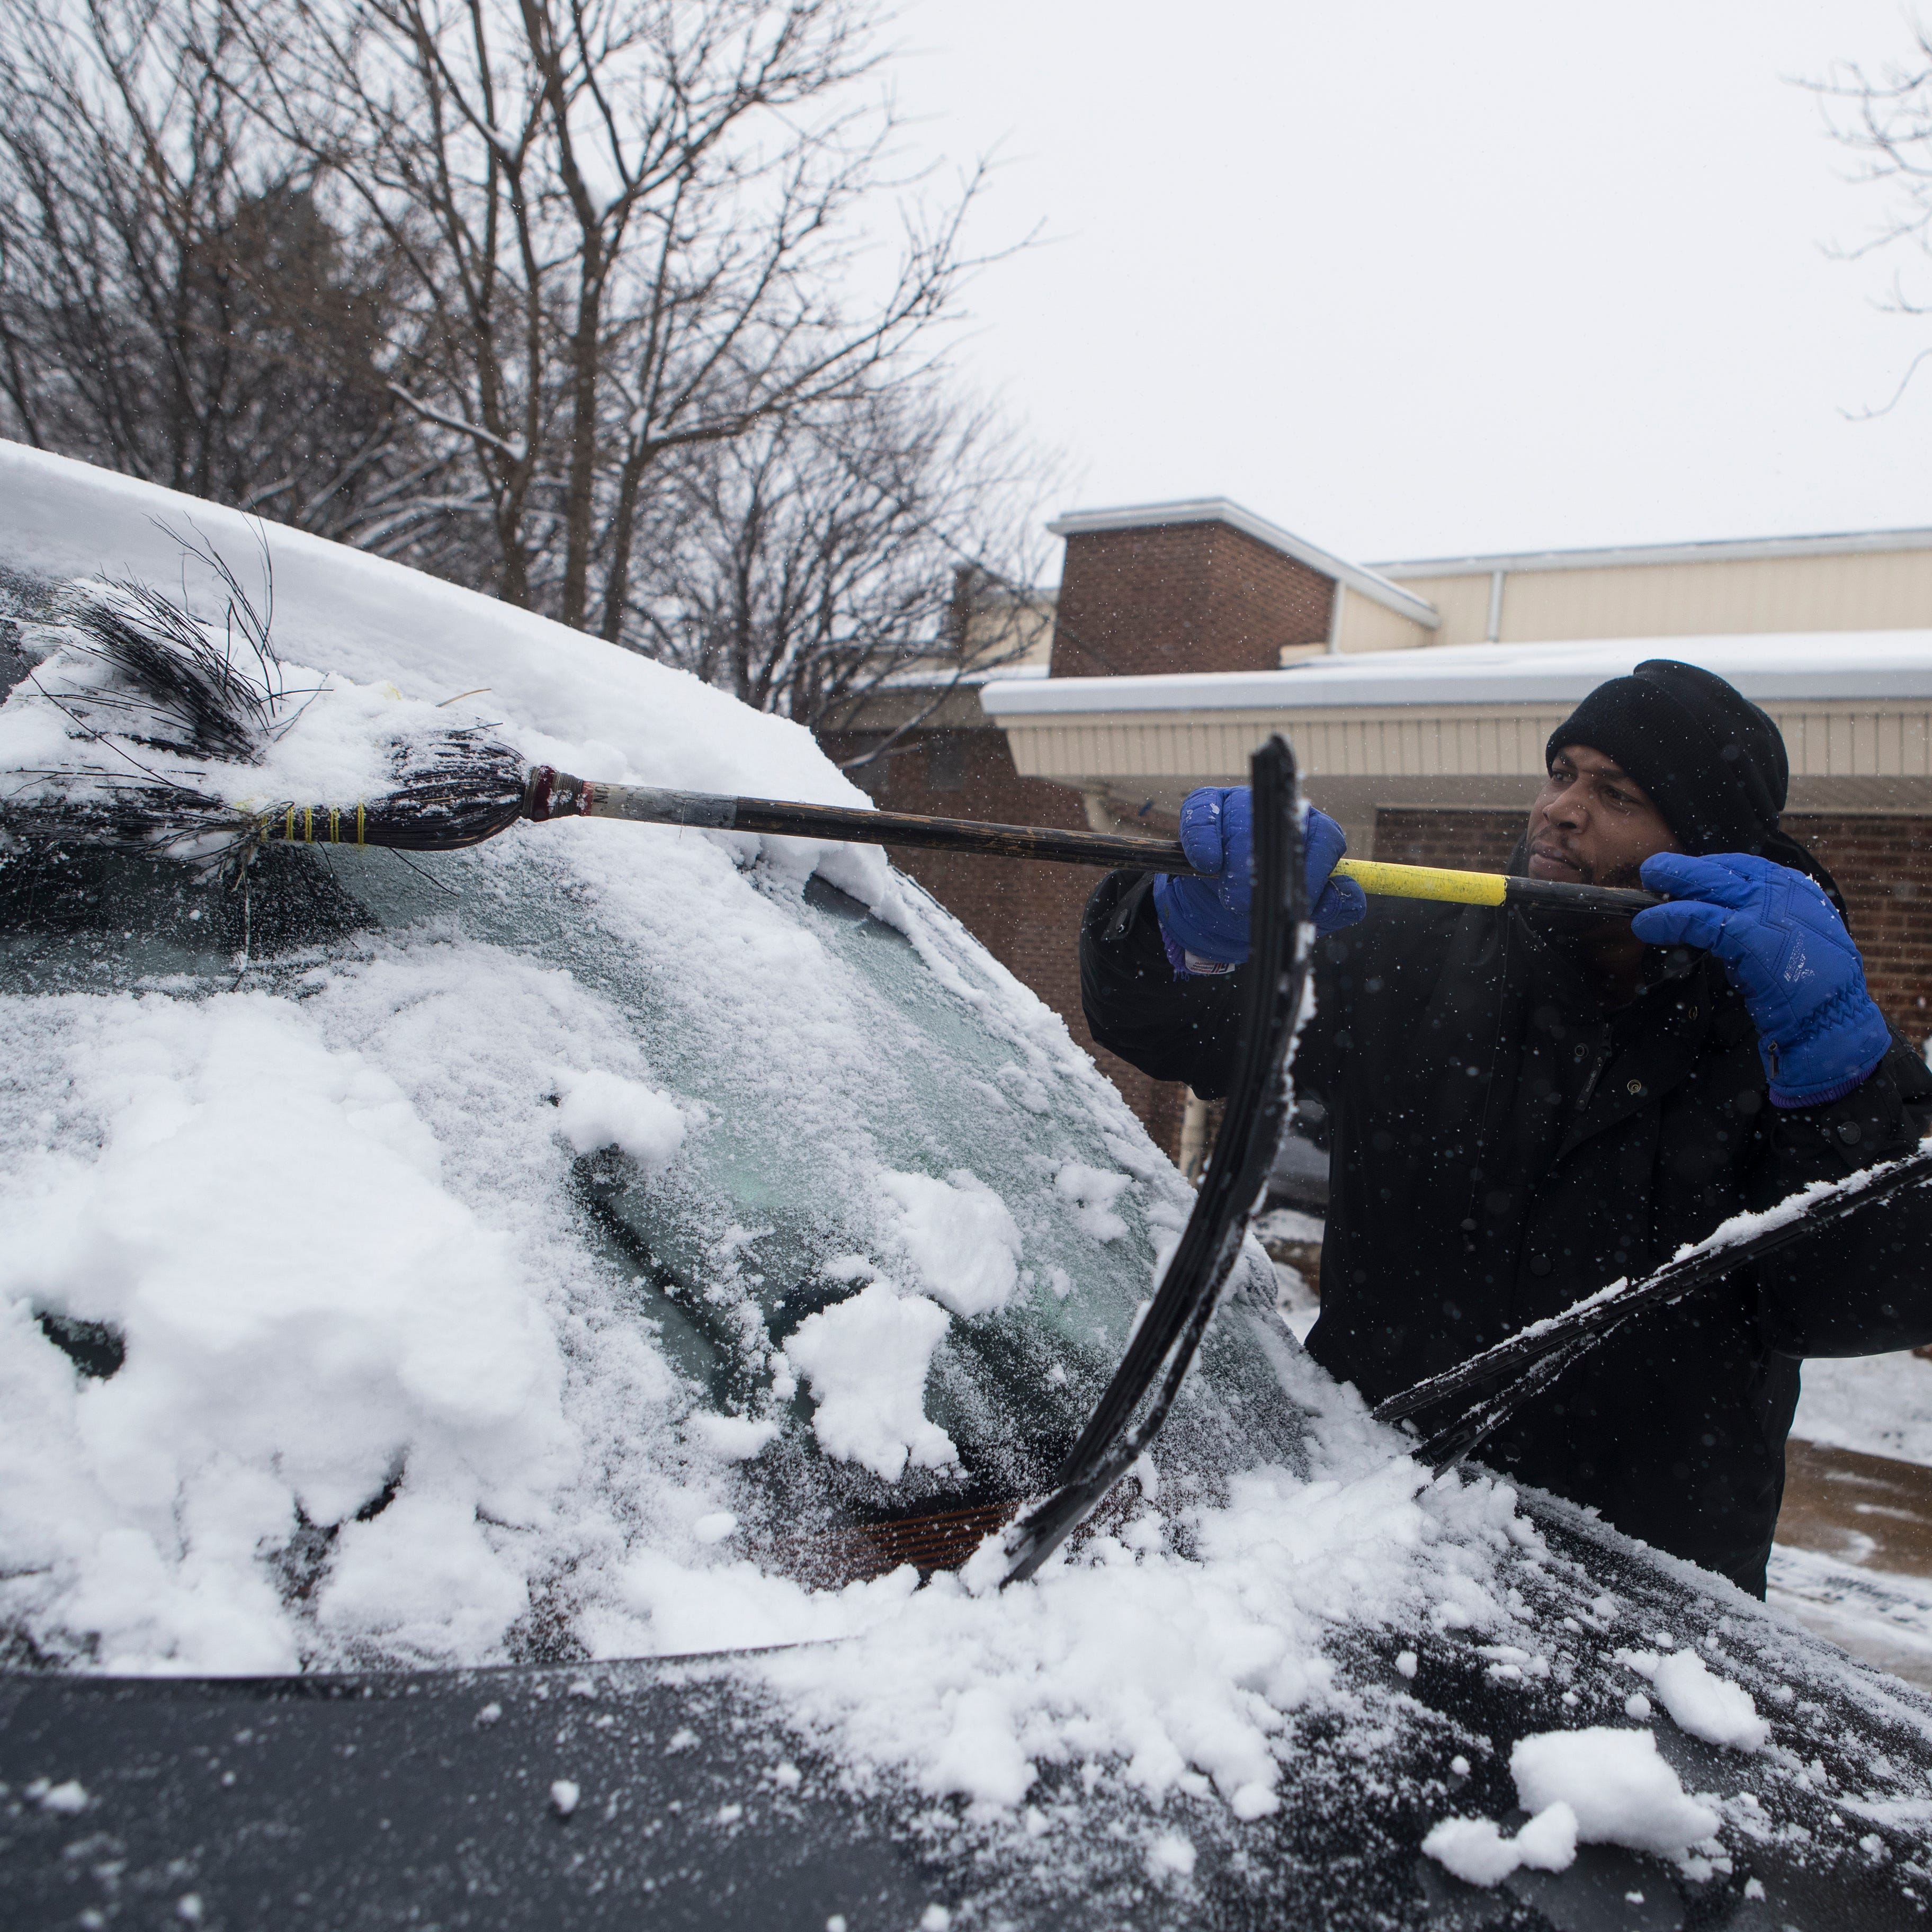 Northern Delaware hit the hardest by snow, with 3.4 inches in Hockessin so far